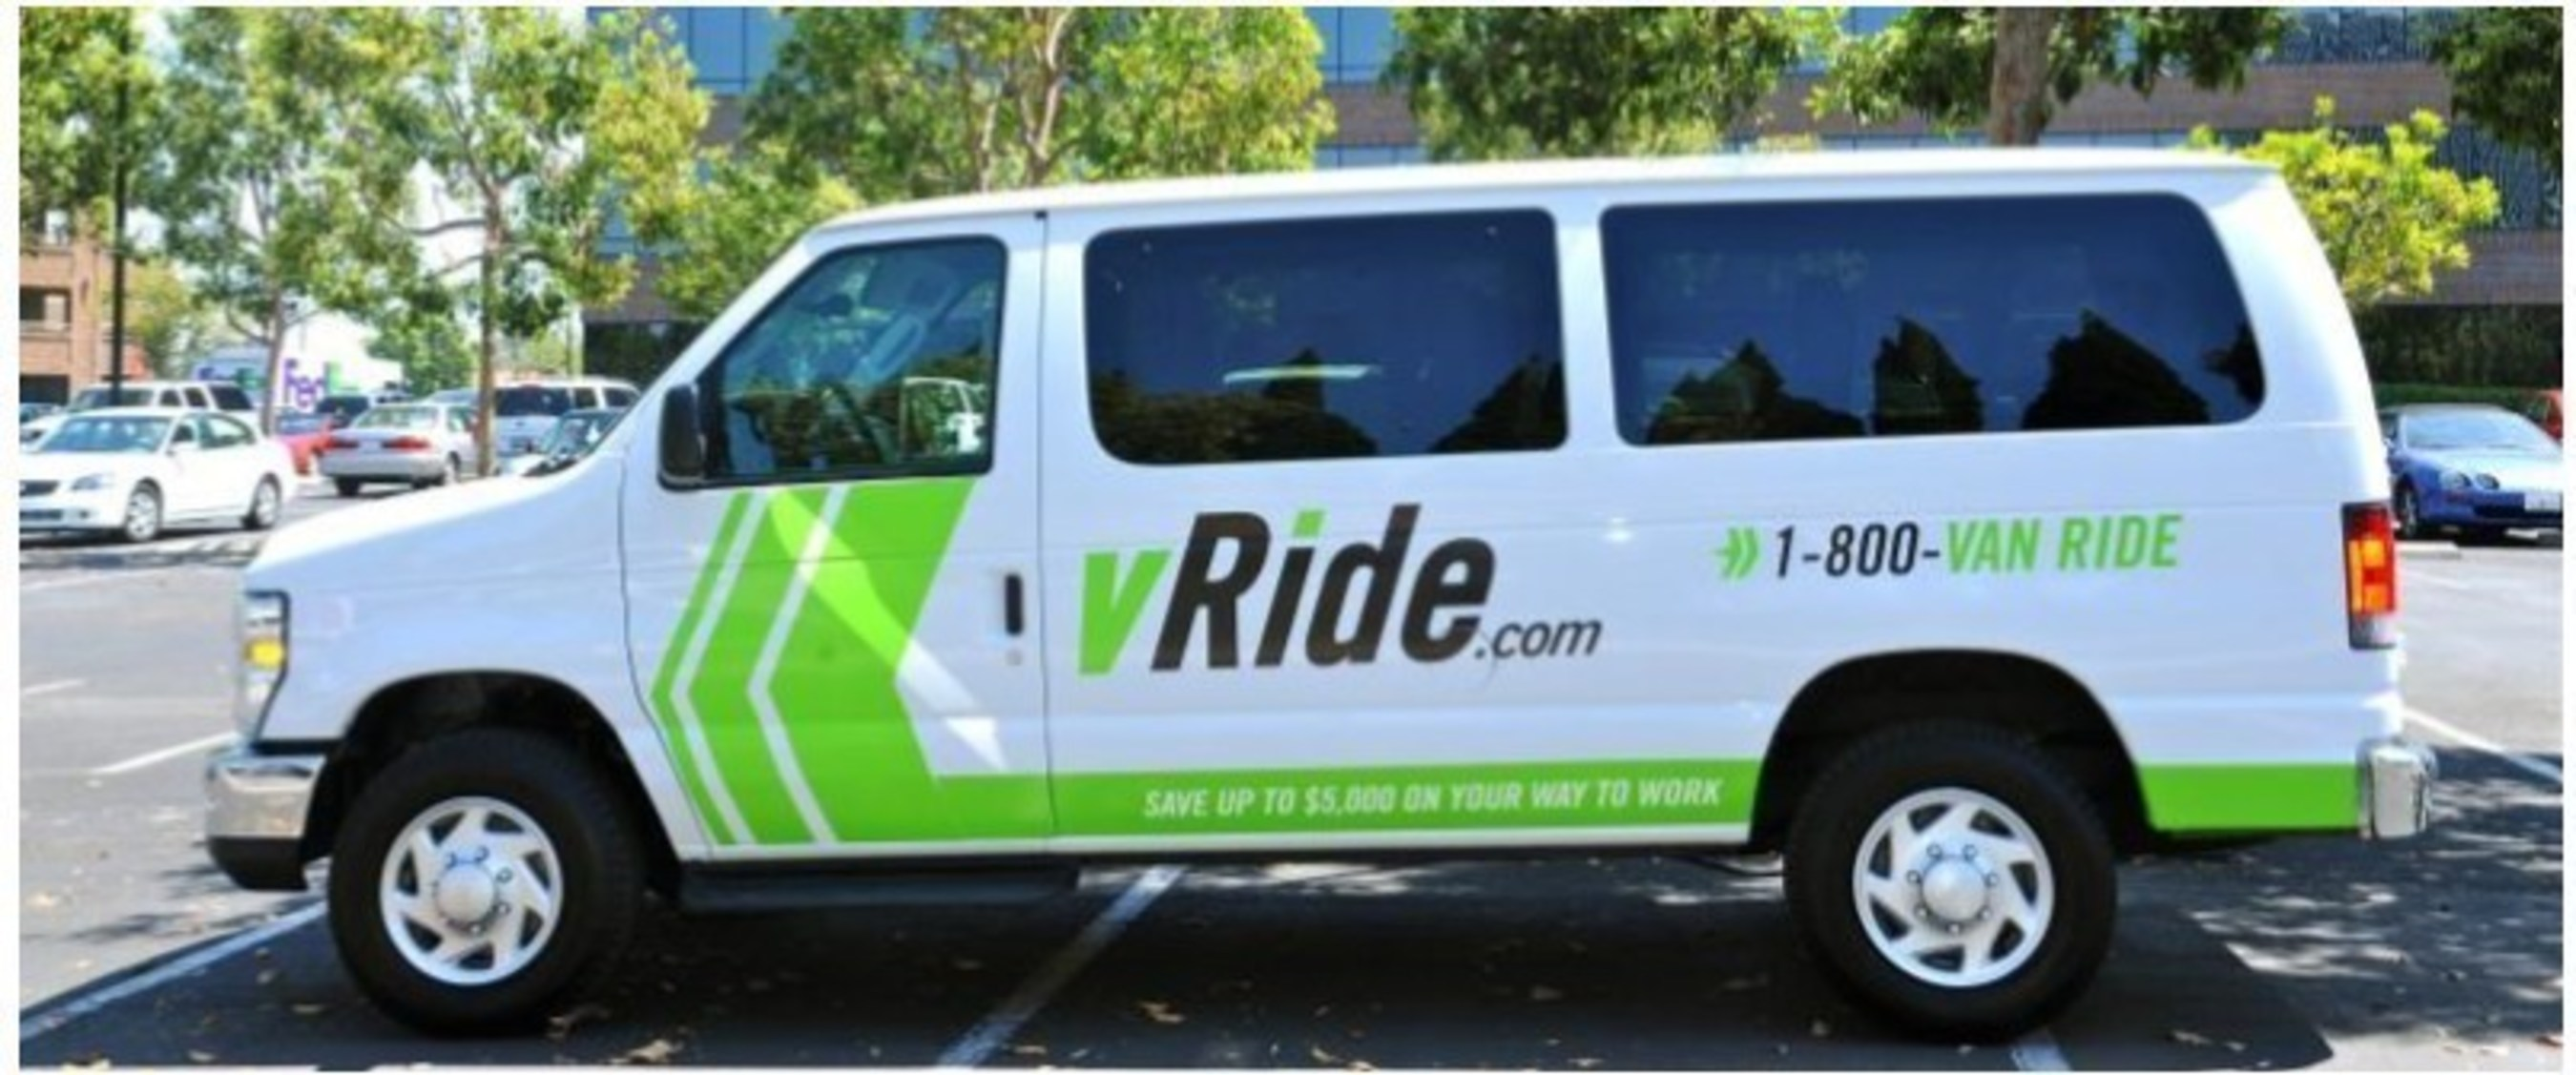 Enterprise Holdings Acquires vRide Vanpooling Business